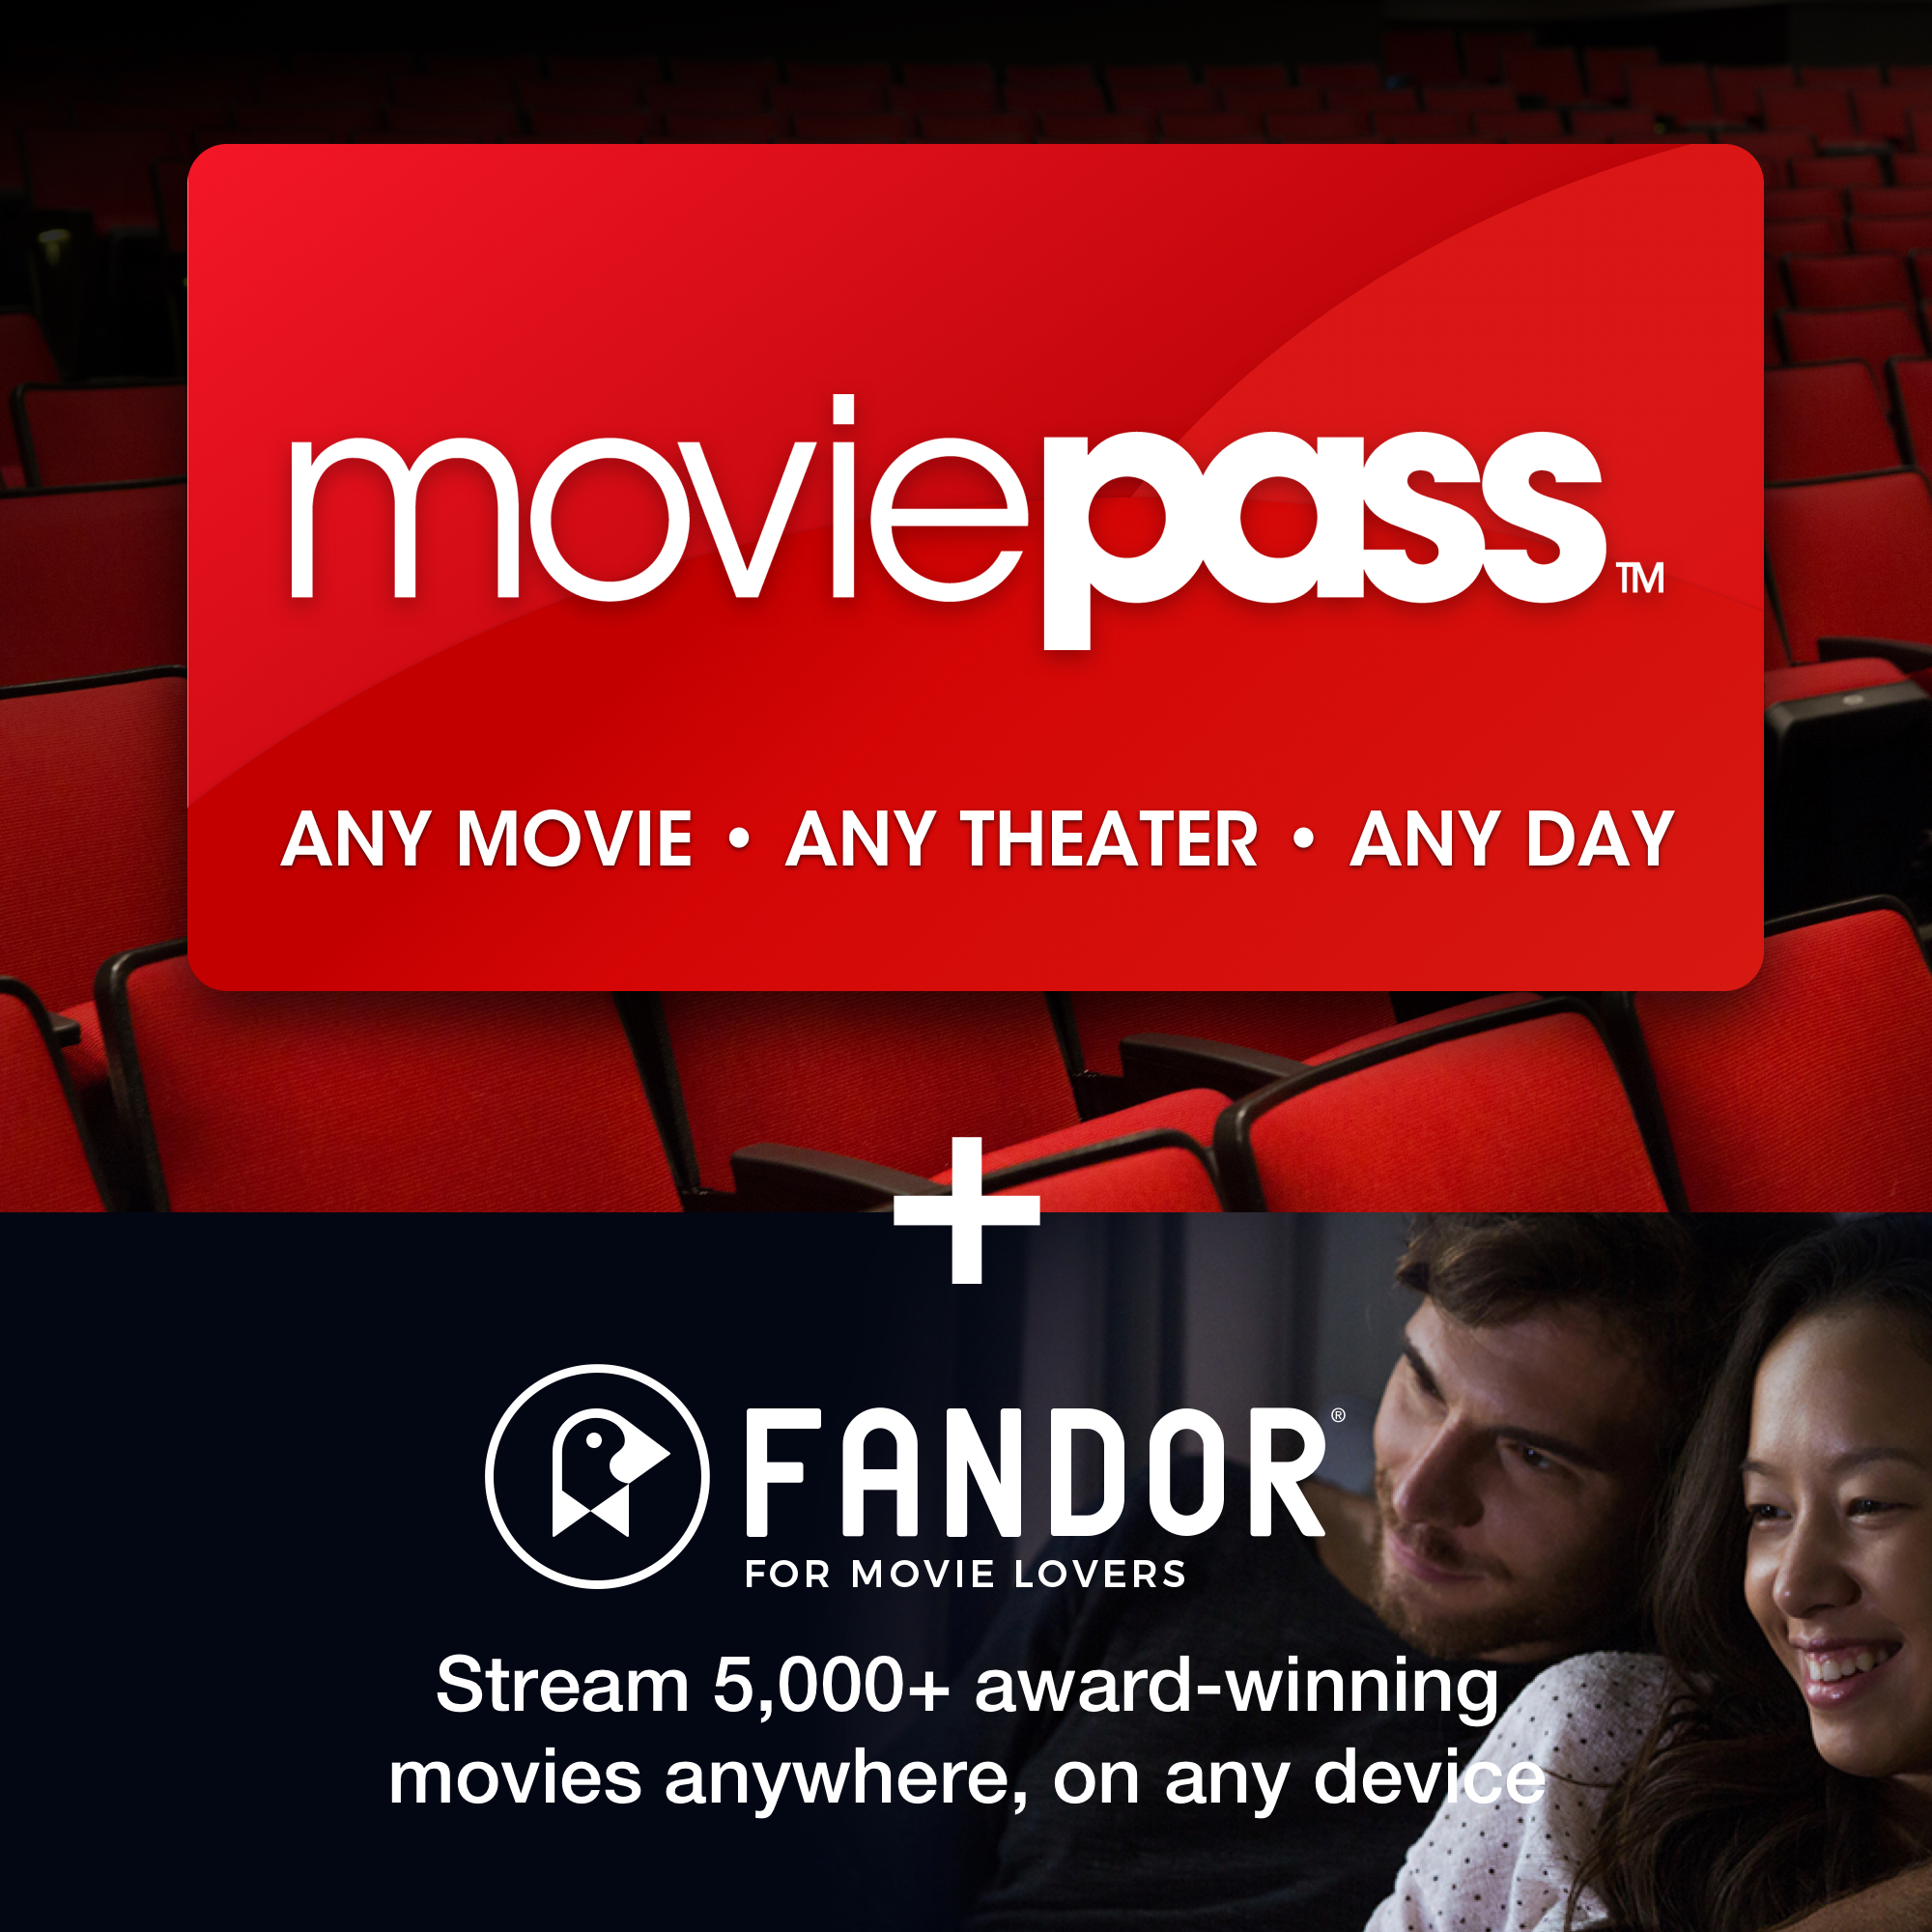 9a06861e67c3a1 Costco Extends its Offering with MoviePass™ and Fandor into the New ...